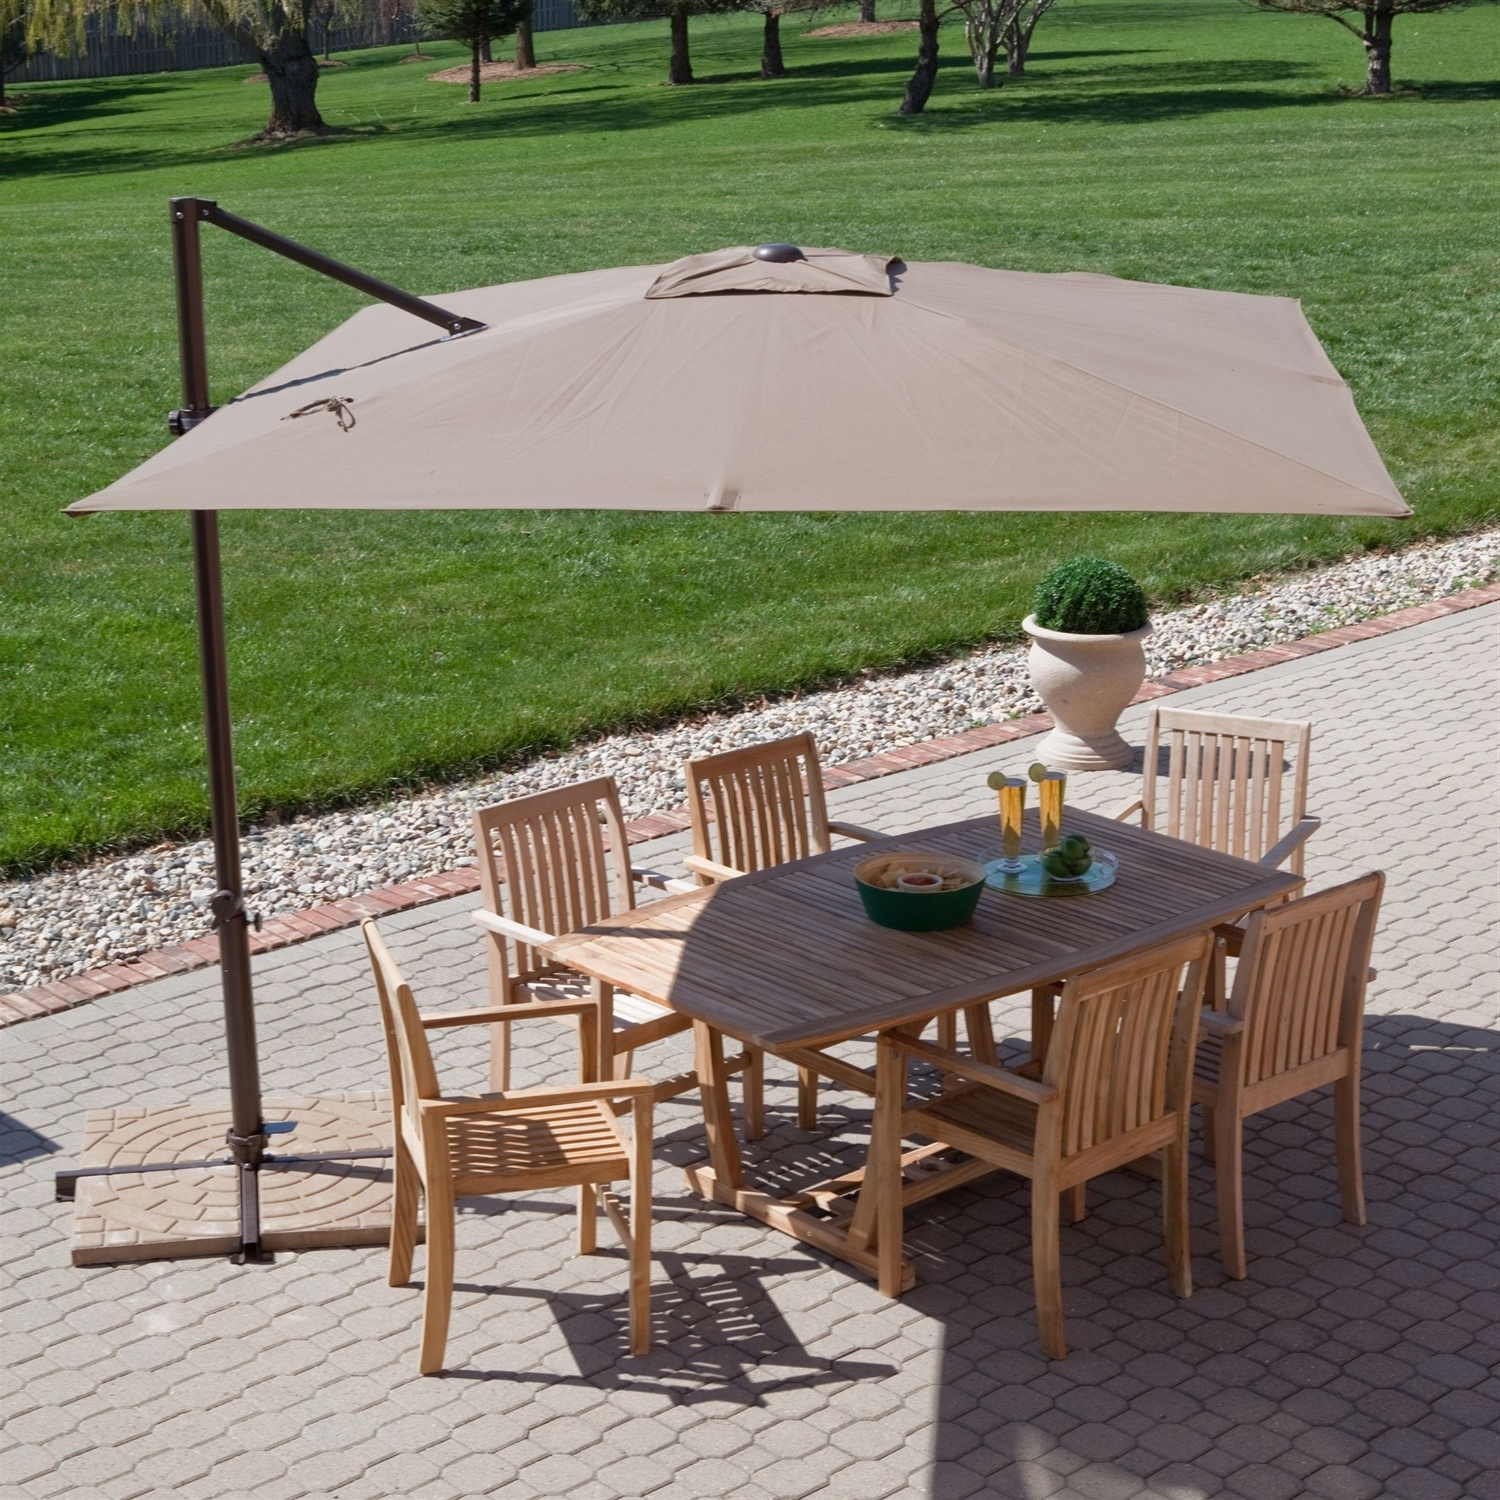 Famous Offset Patio Umbrellas With Base Inside Patio Umbrella Offset – Oiola (Gallery 7 of 20)